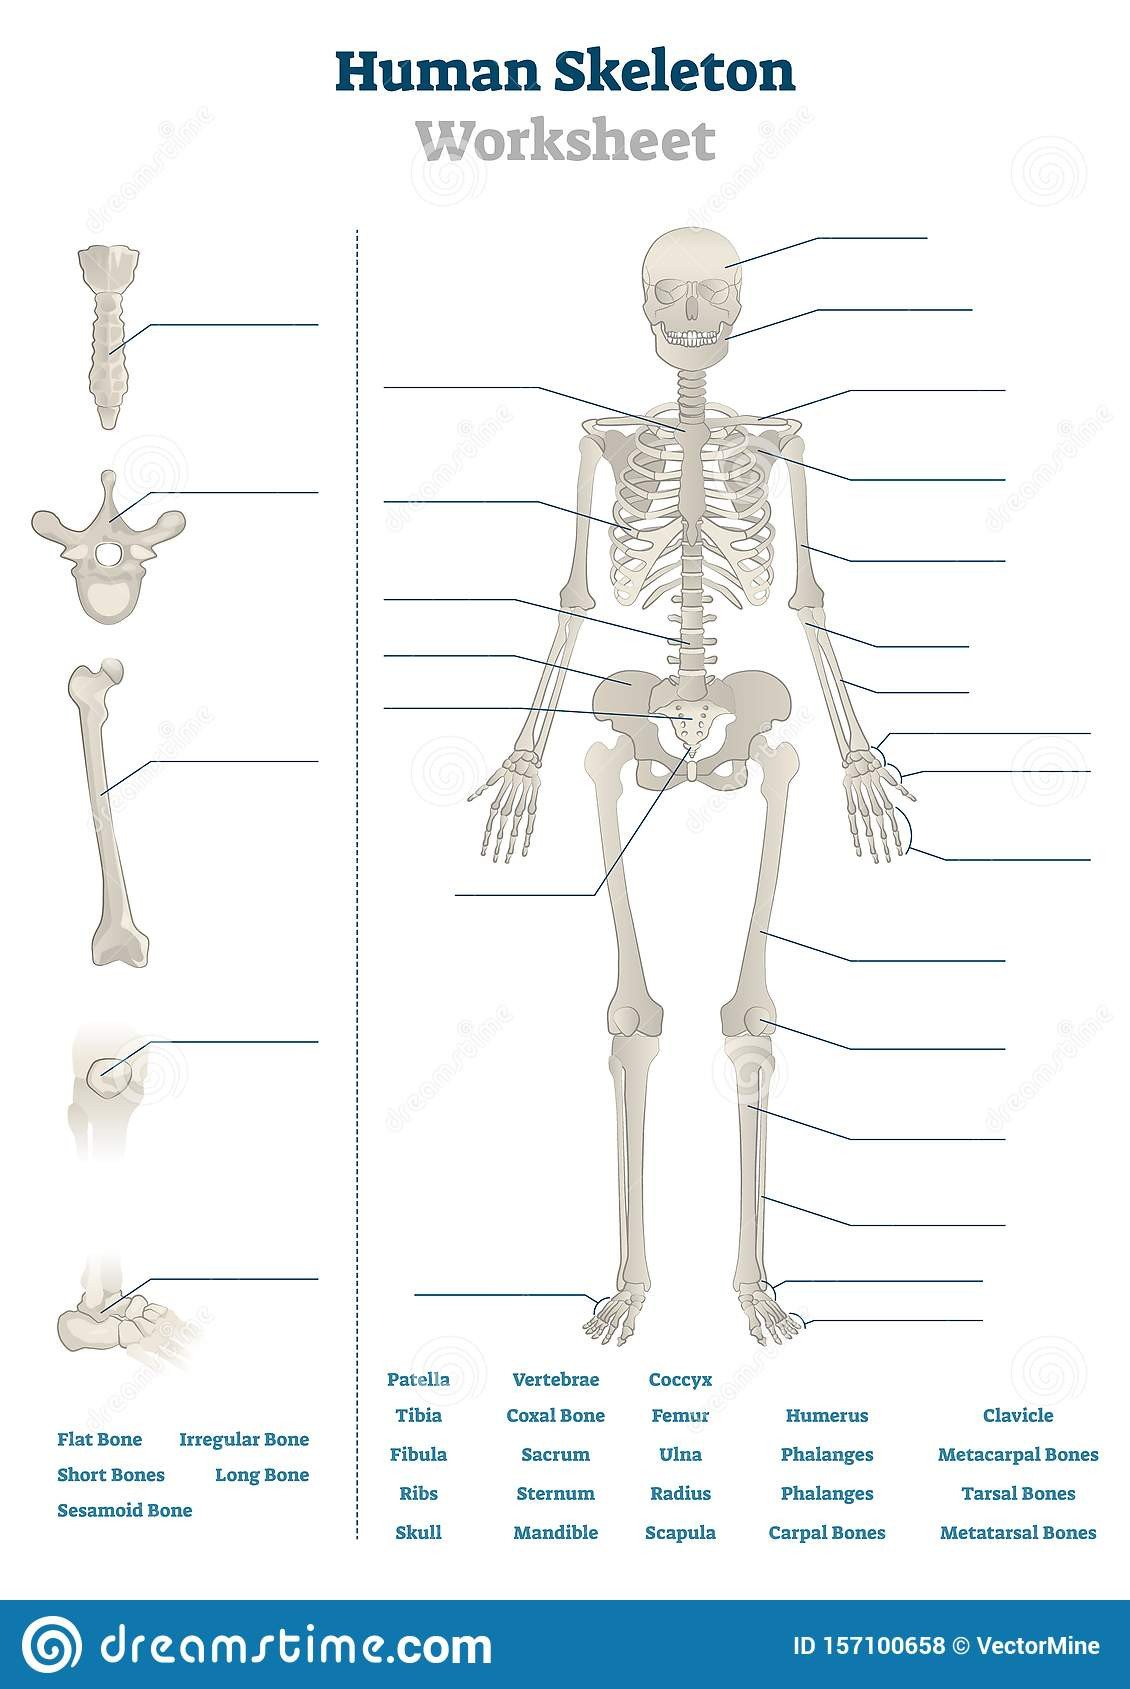 human skeleton worksheet vector illustration blank educational bone scheme bones inner skeletal system practice lessons task